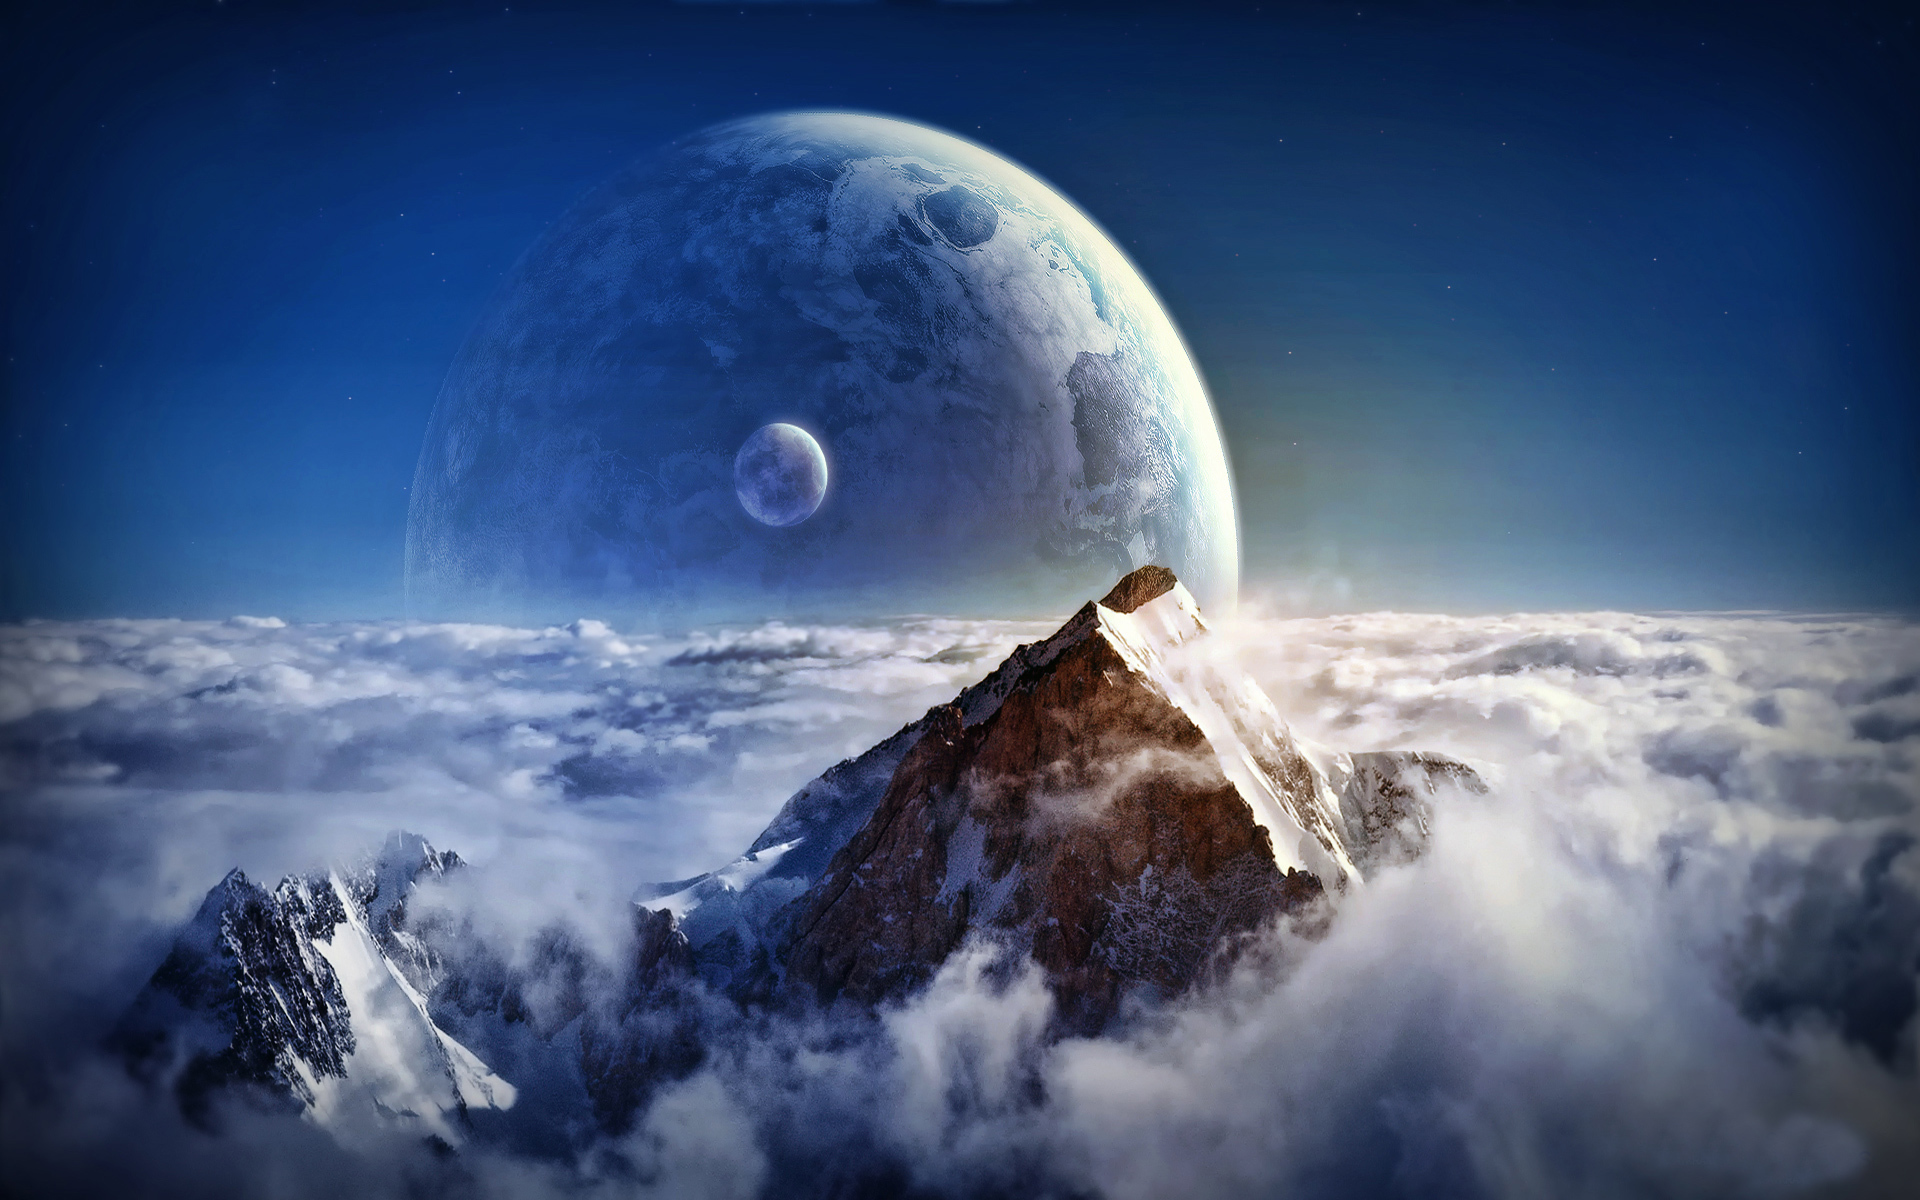 Download mobile wallpaper Mountains, Fantasy, Planets, Landscape for free.